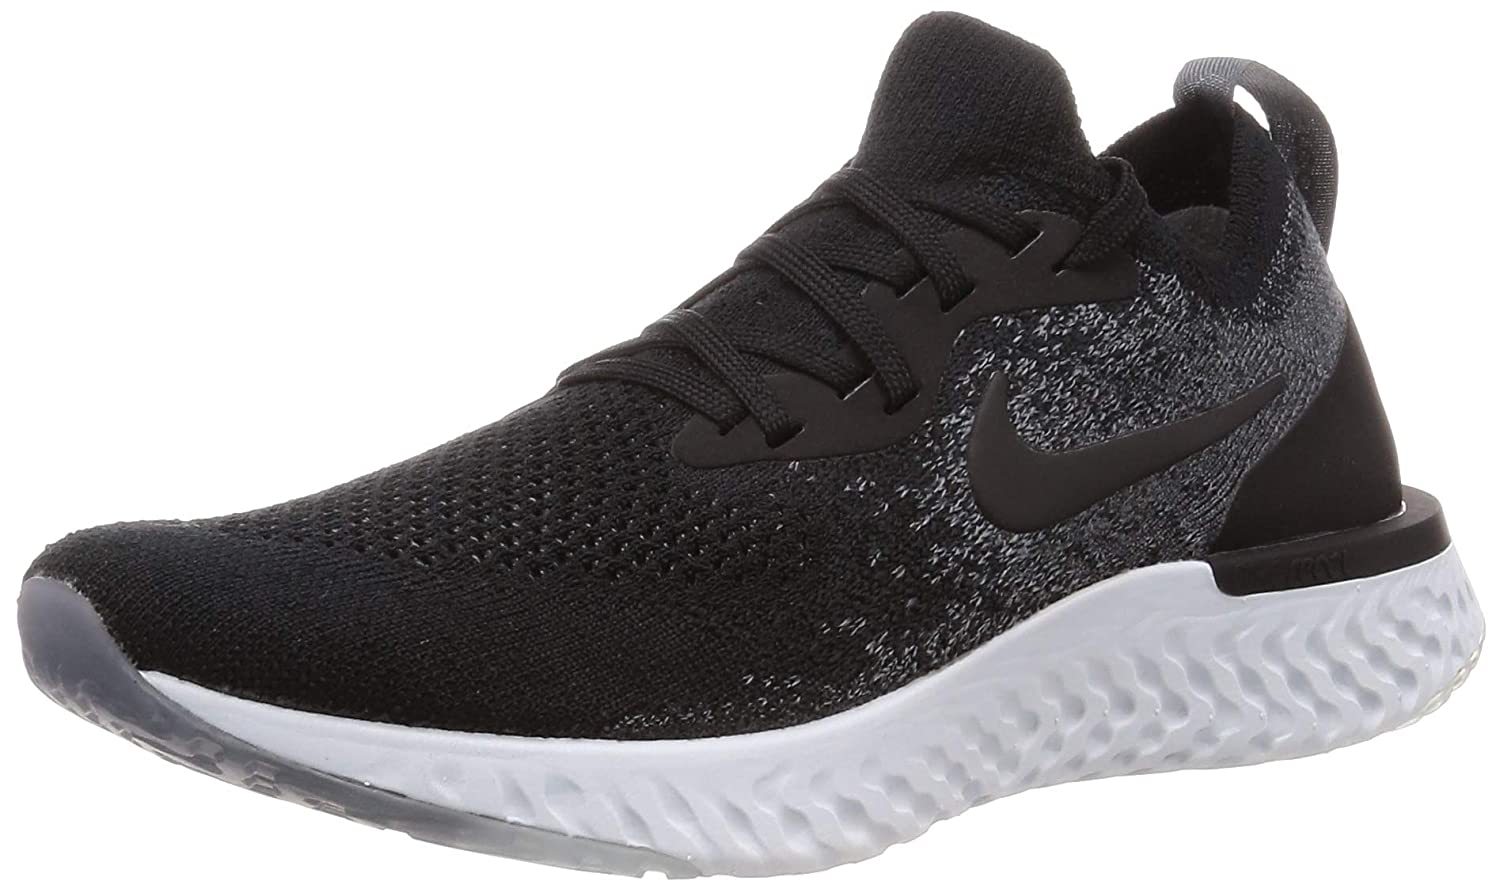 278a9b5134 Amazon.com | Nike Men's / Women's Epic React Flyknit Running Shoe | Road  Running